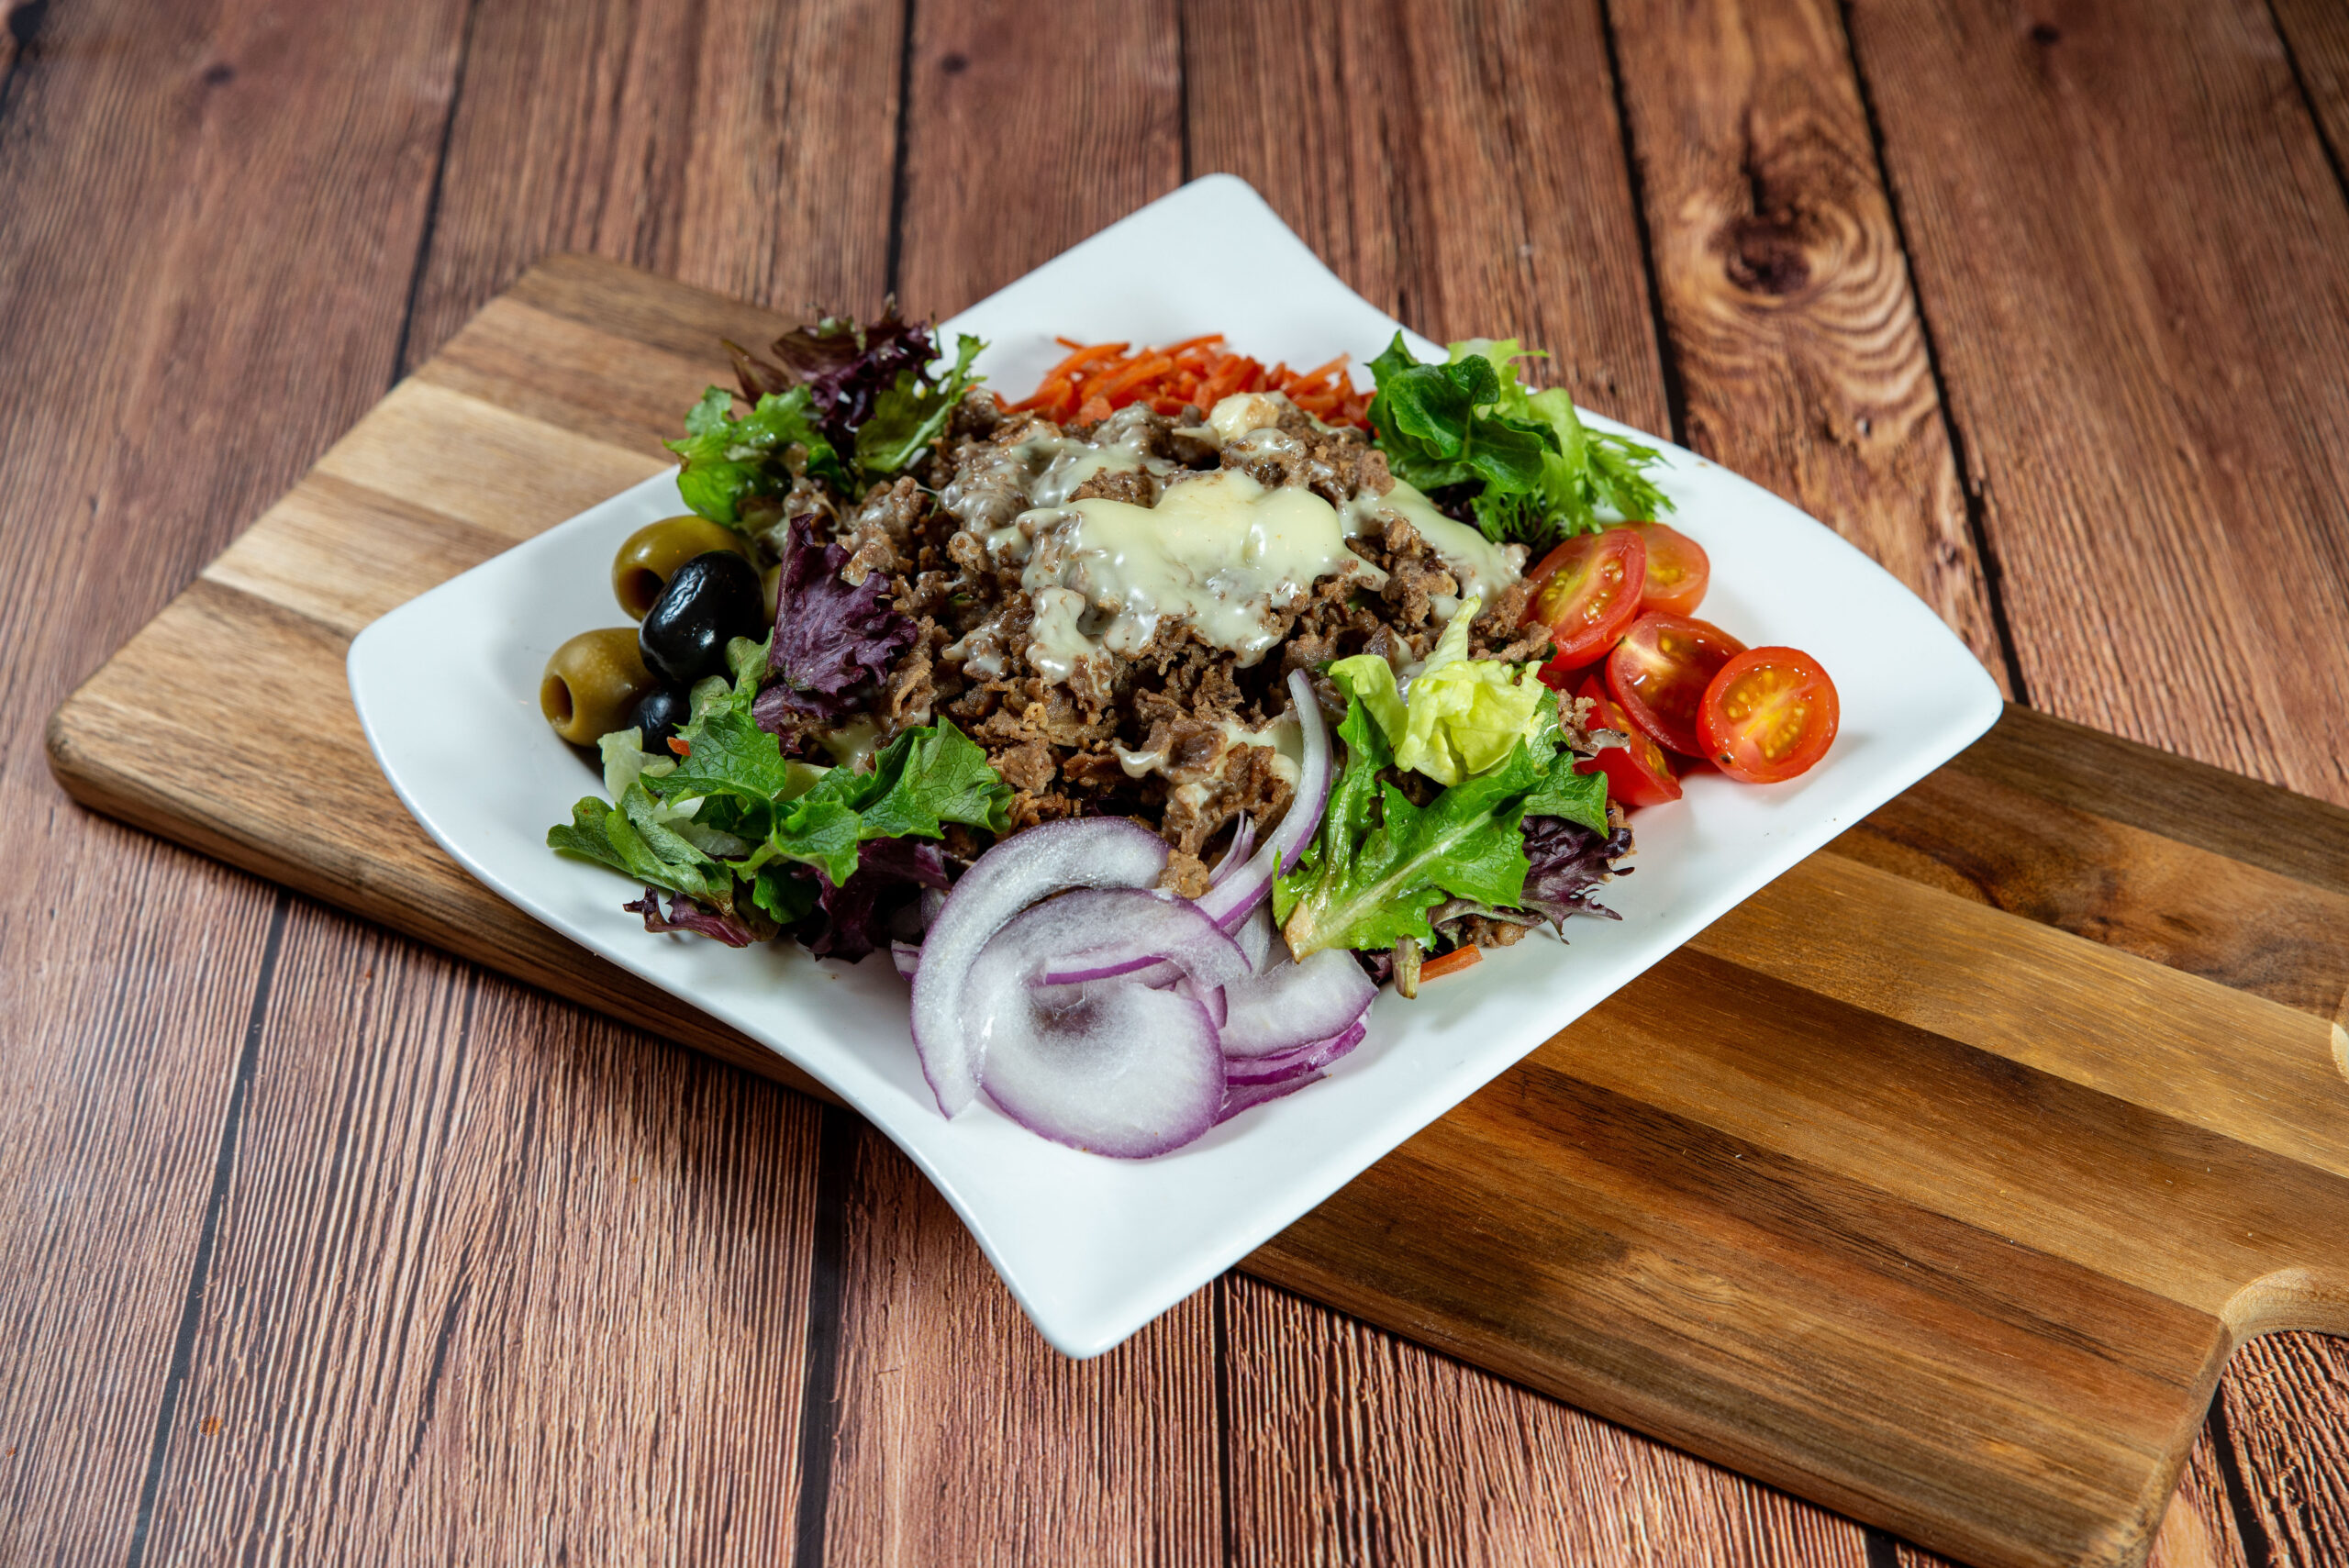 Steak and Cheese Salad